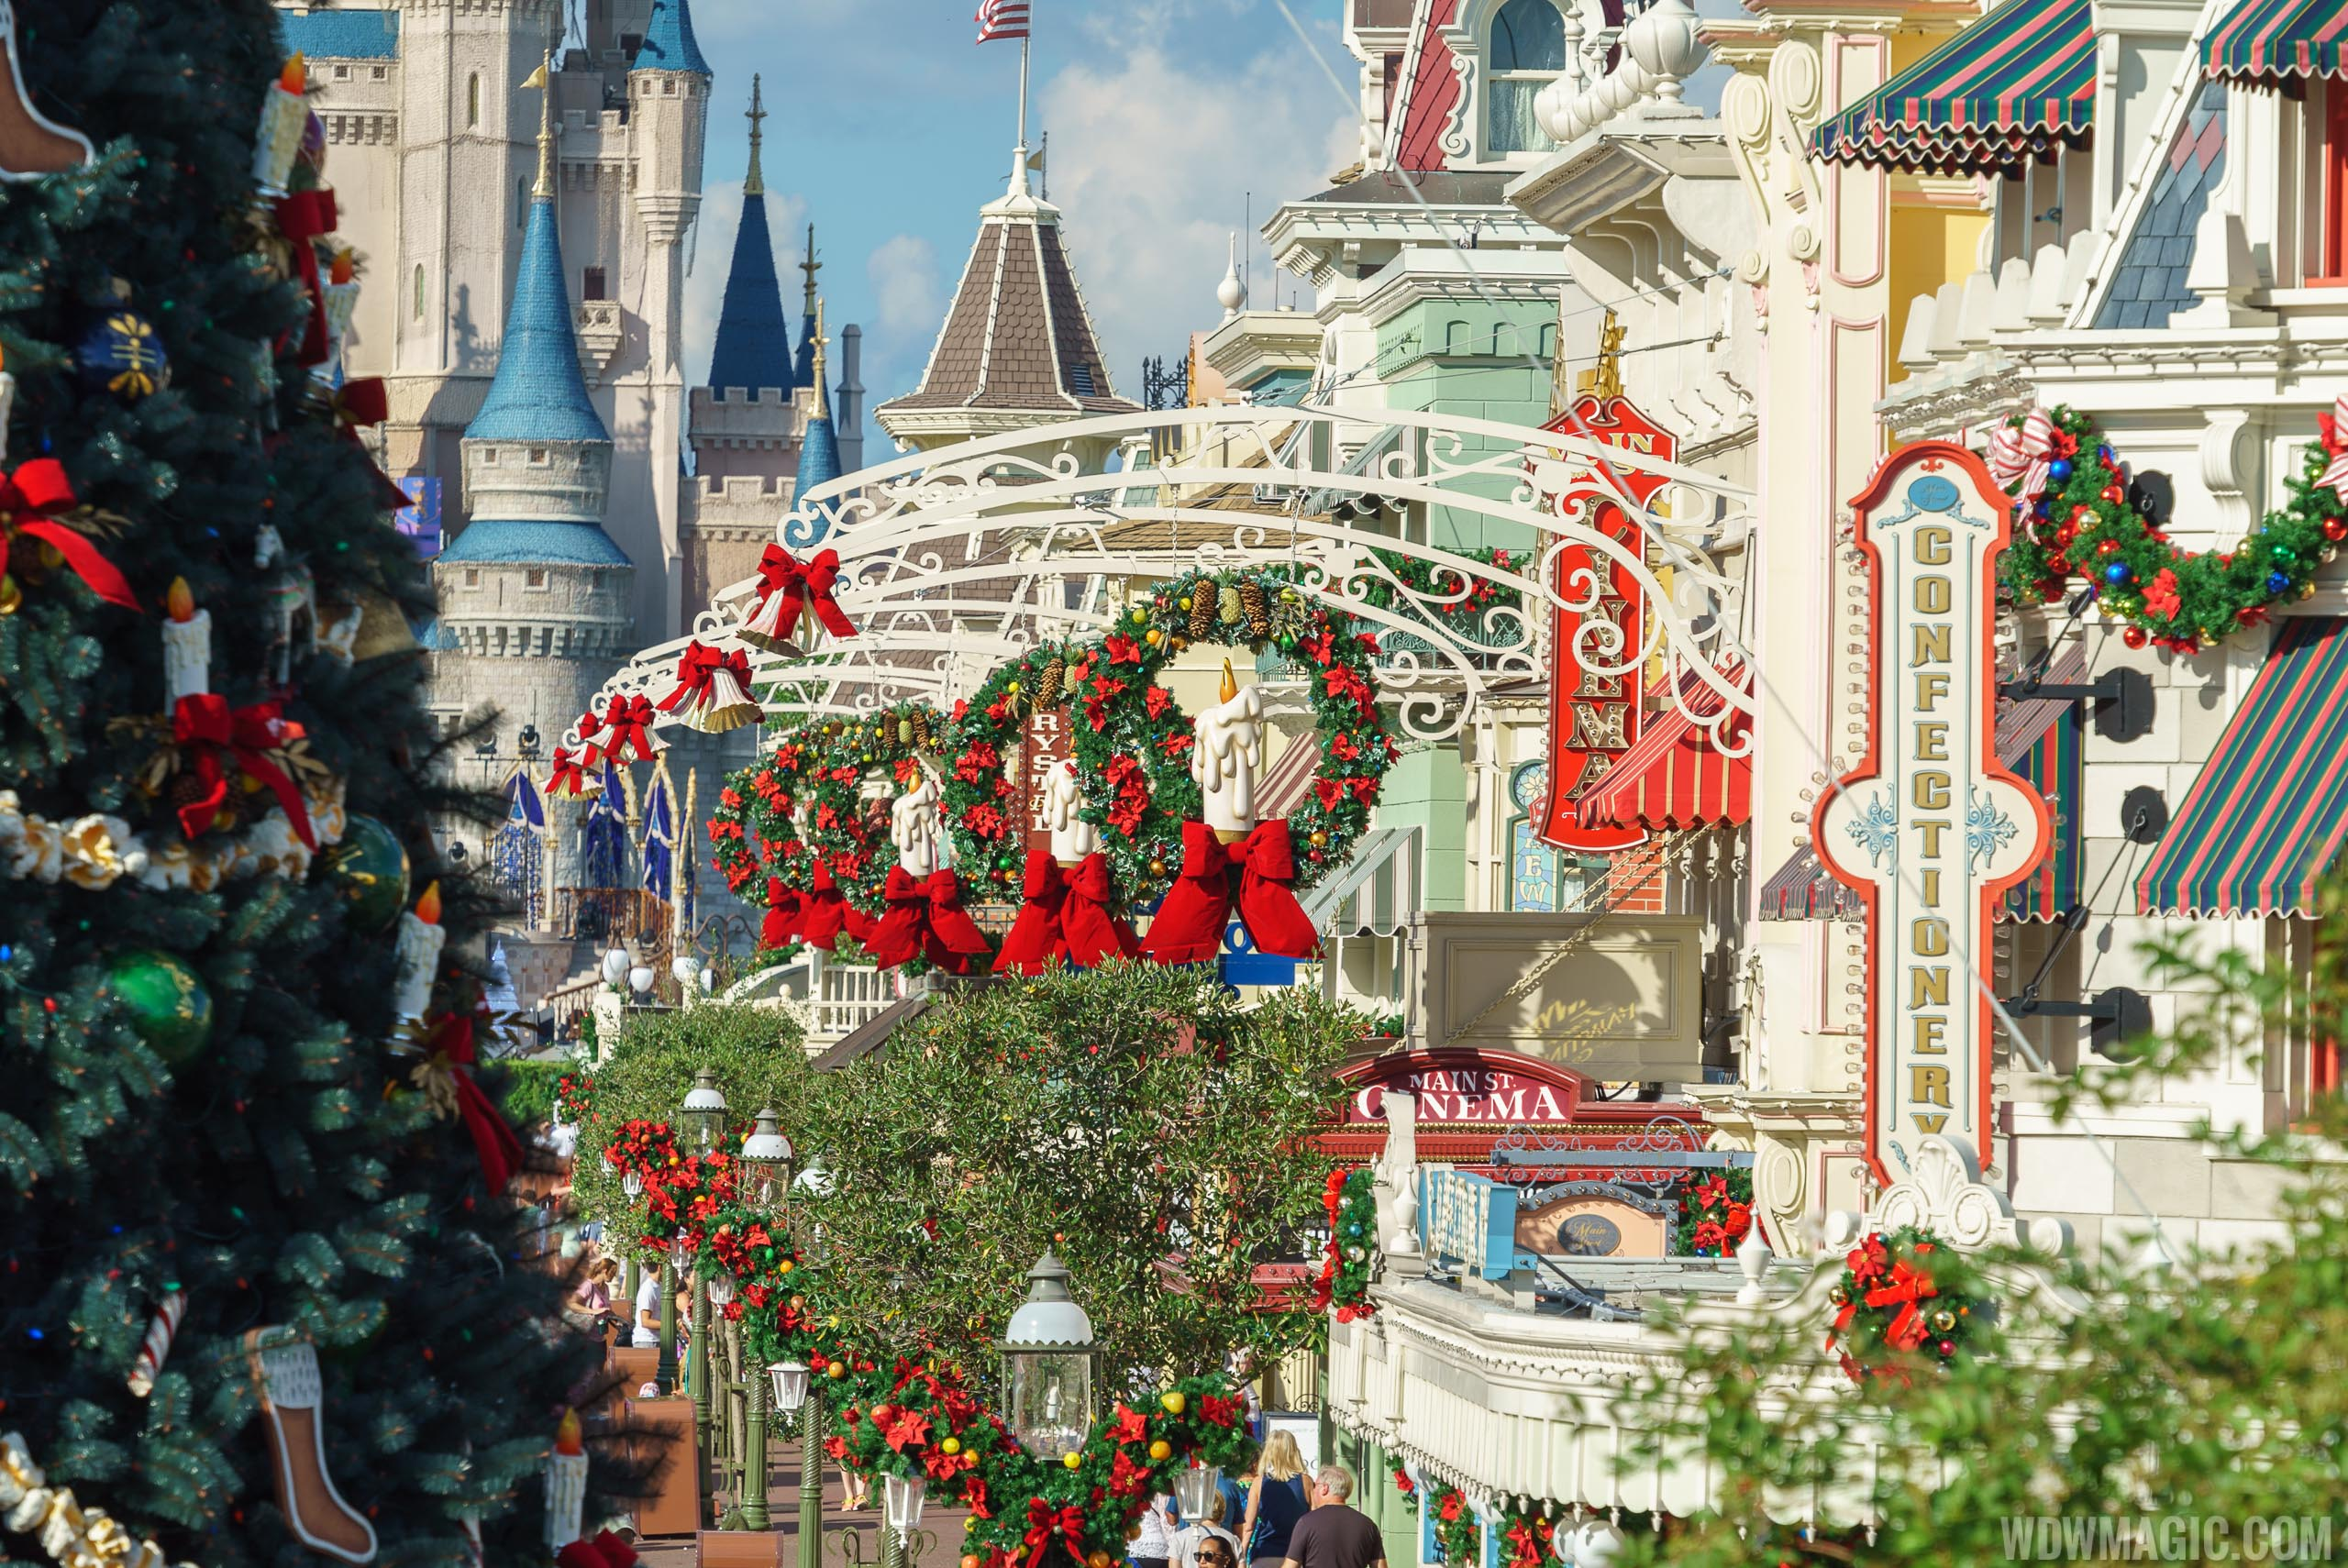 photos the magic kingdoms 2017 christmas holiday decorations - When Does Disney Decorate For Christmas 2017